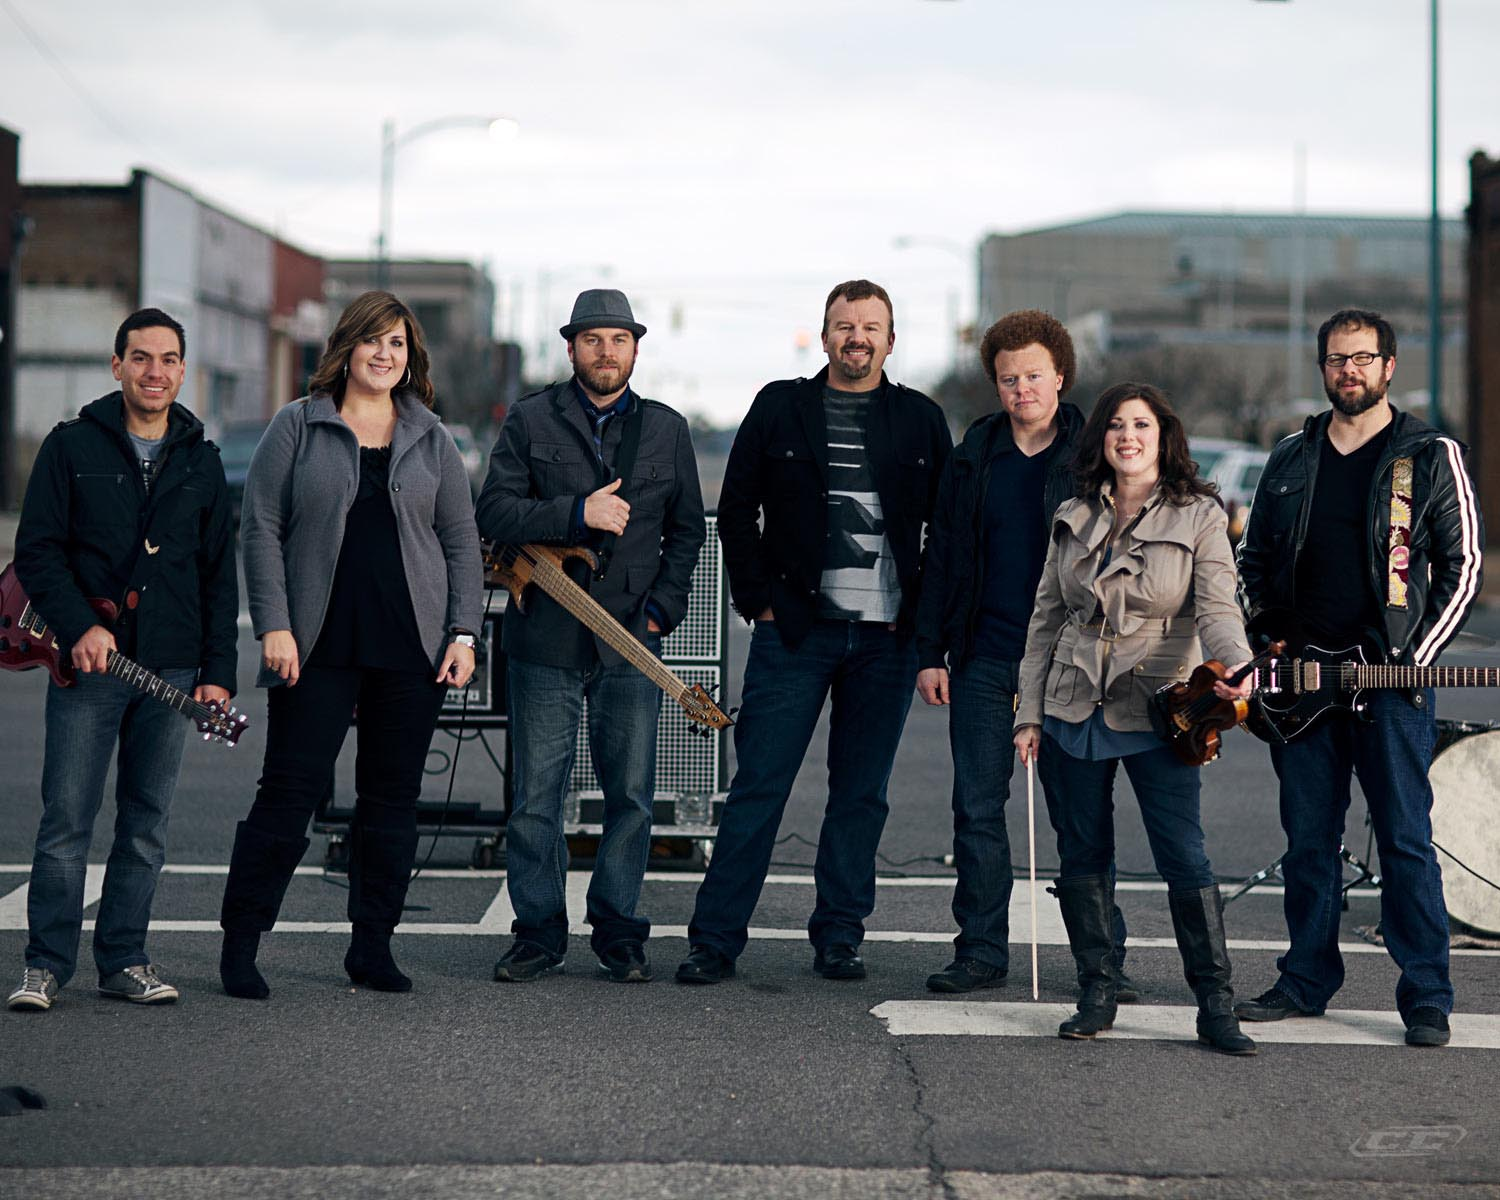 Casting Crowns - The Acoustic Sessions Volume 1 2013 Band Members